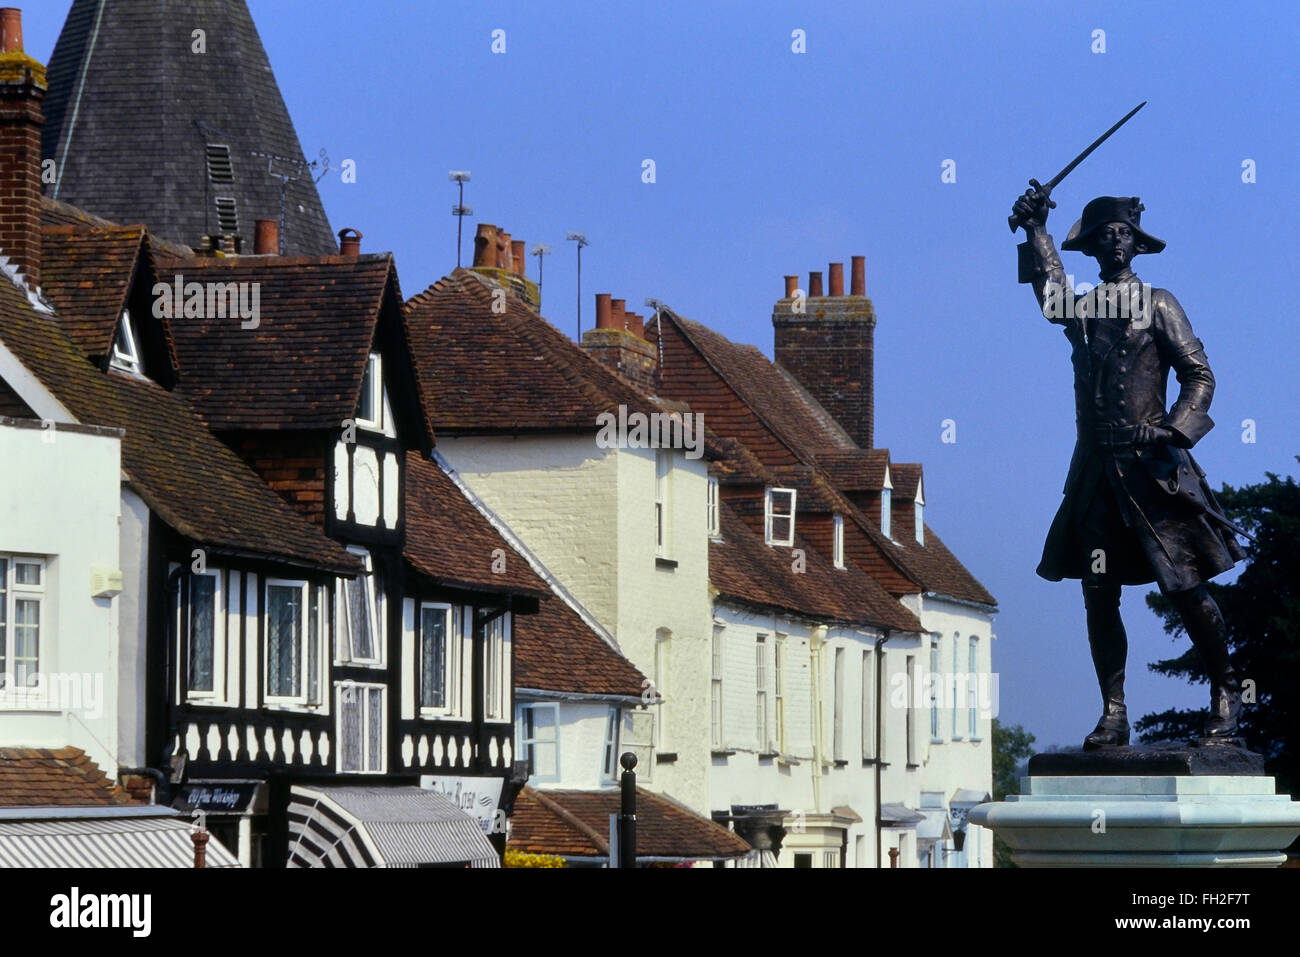 Statue of Major General James P. Wolfe on the Green at Westerham, Kent, UK - Stock Image